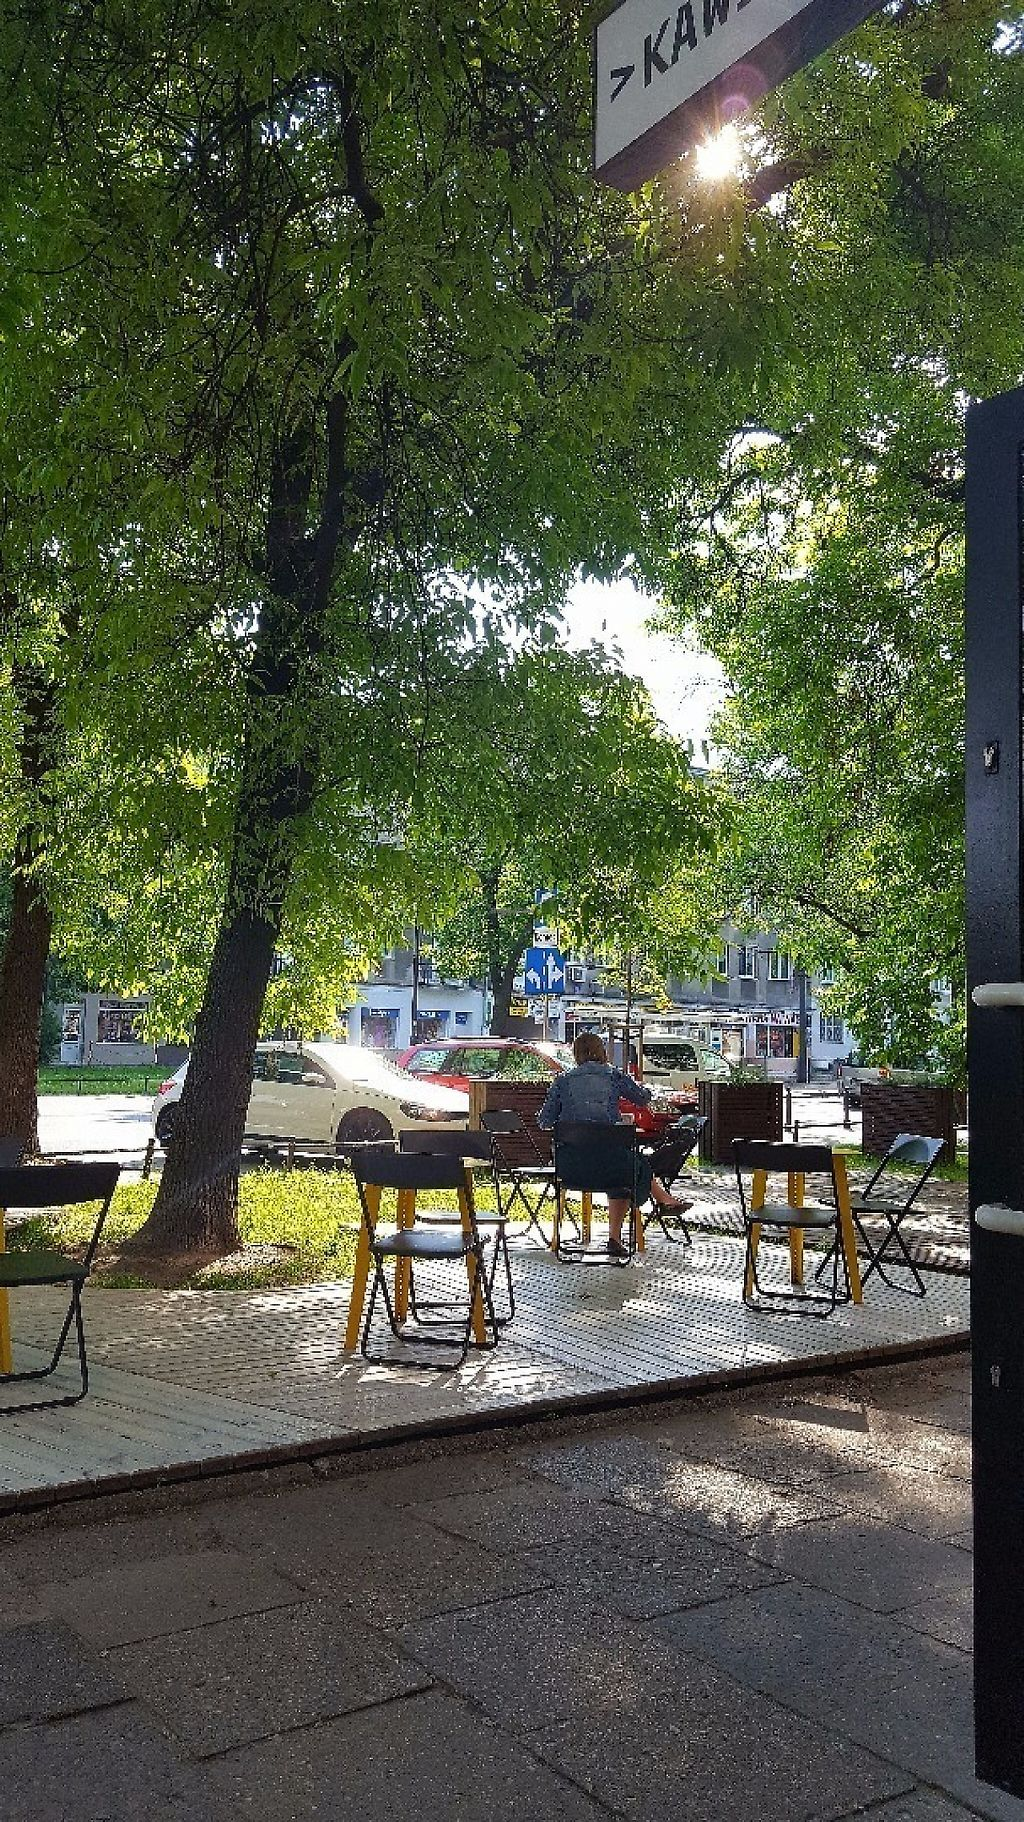 """Photo of Kawiarnia Fawory  by <a href=""""/members/profile/vanialuena"""">vanialuena</a> <br/>Kawiarnia Fawory, Krakow. Outdoor seating area <br/> May 30, 2017  - <a href='/contact/abuse/image/50904/264210'>Report</a>"""